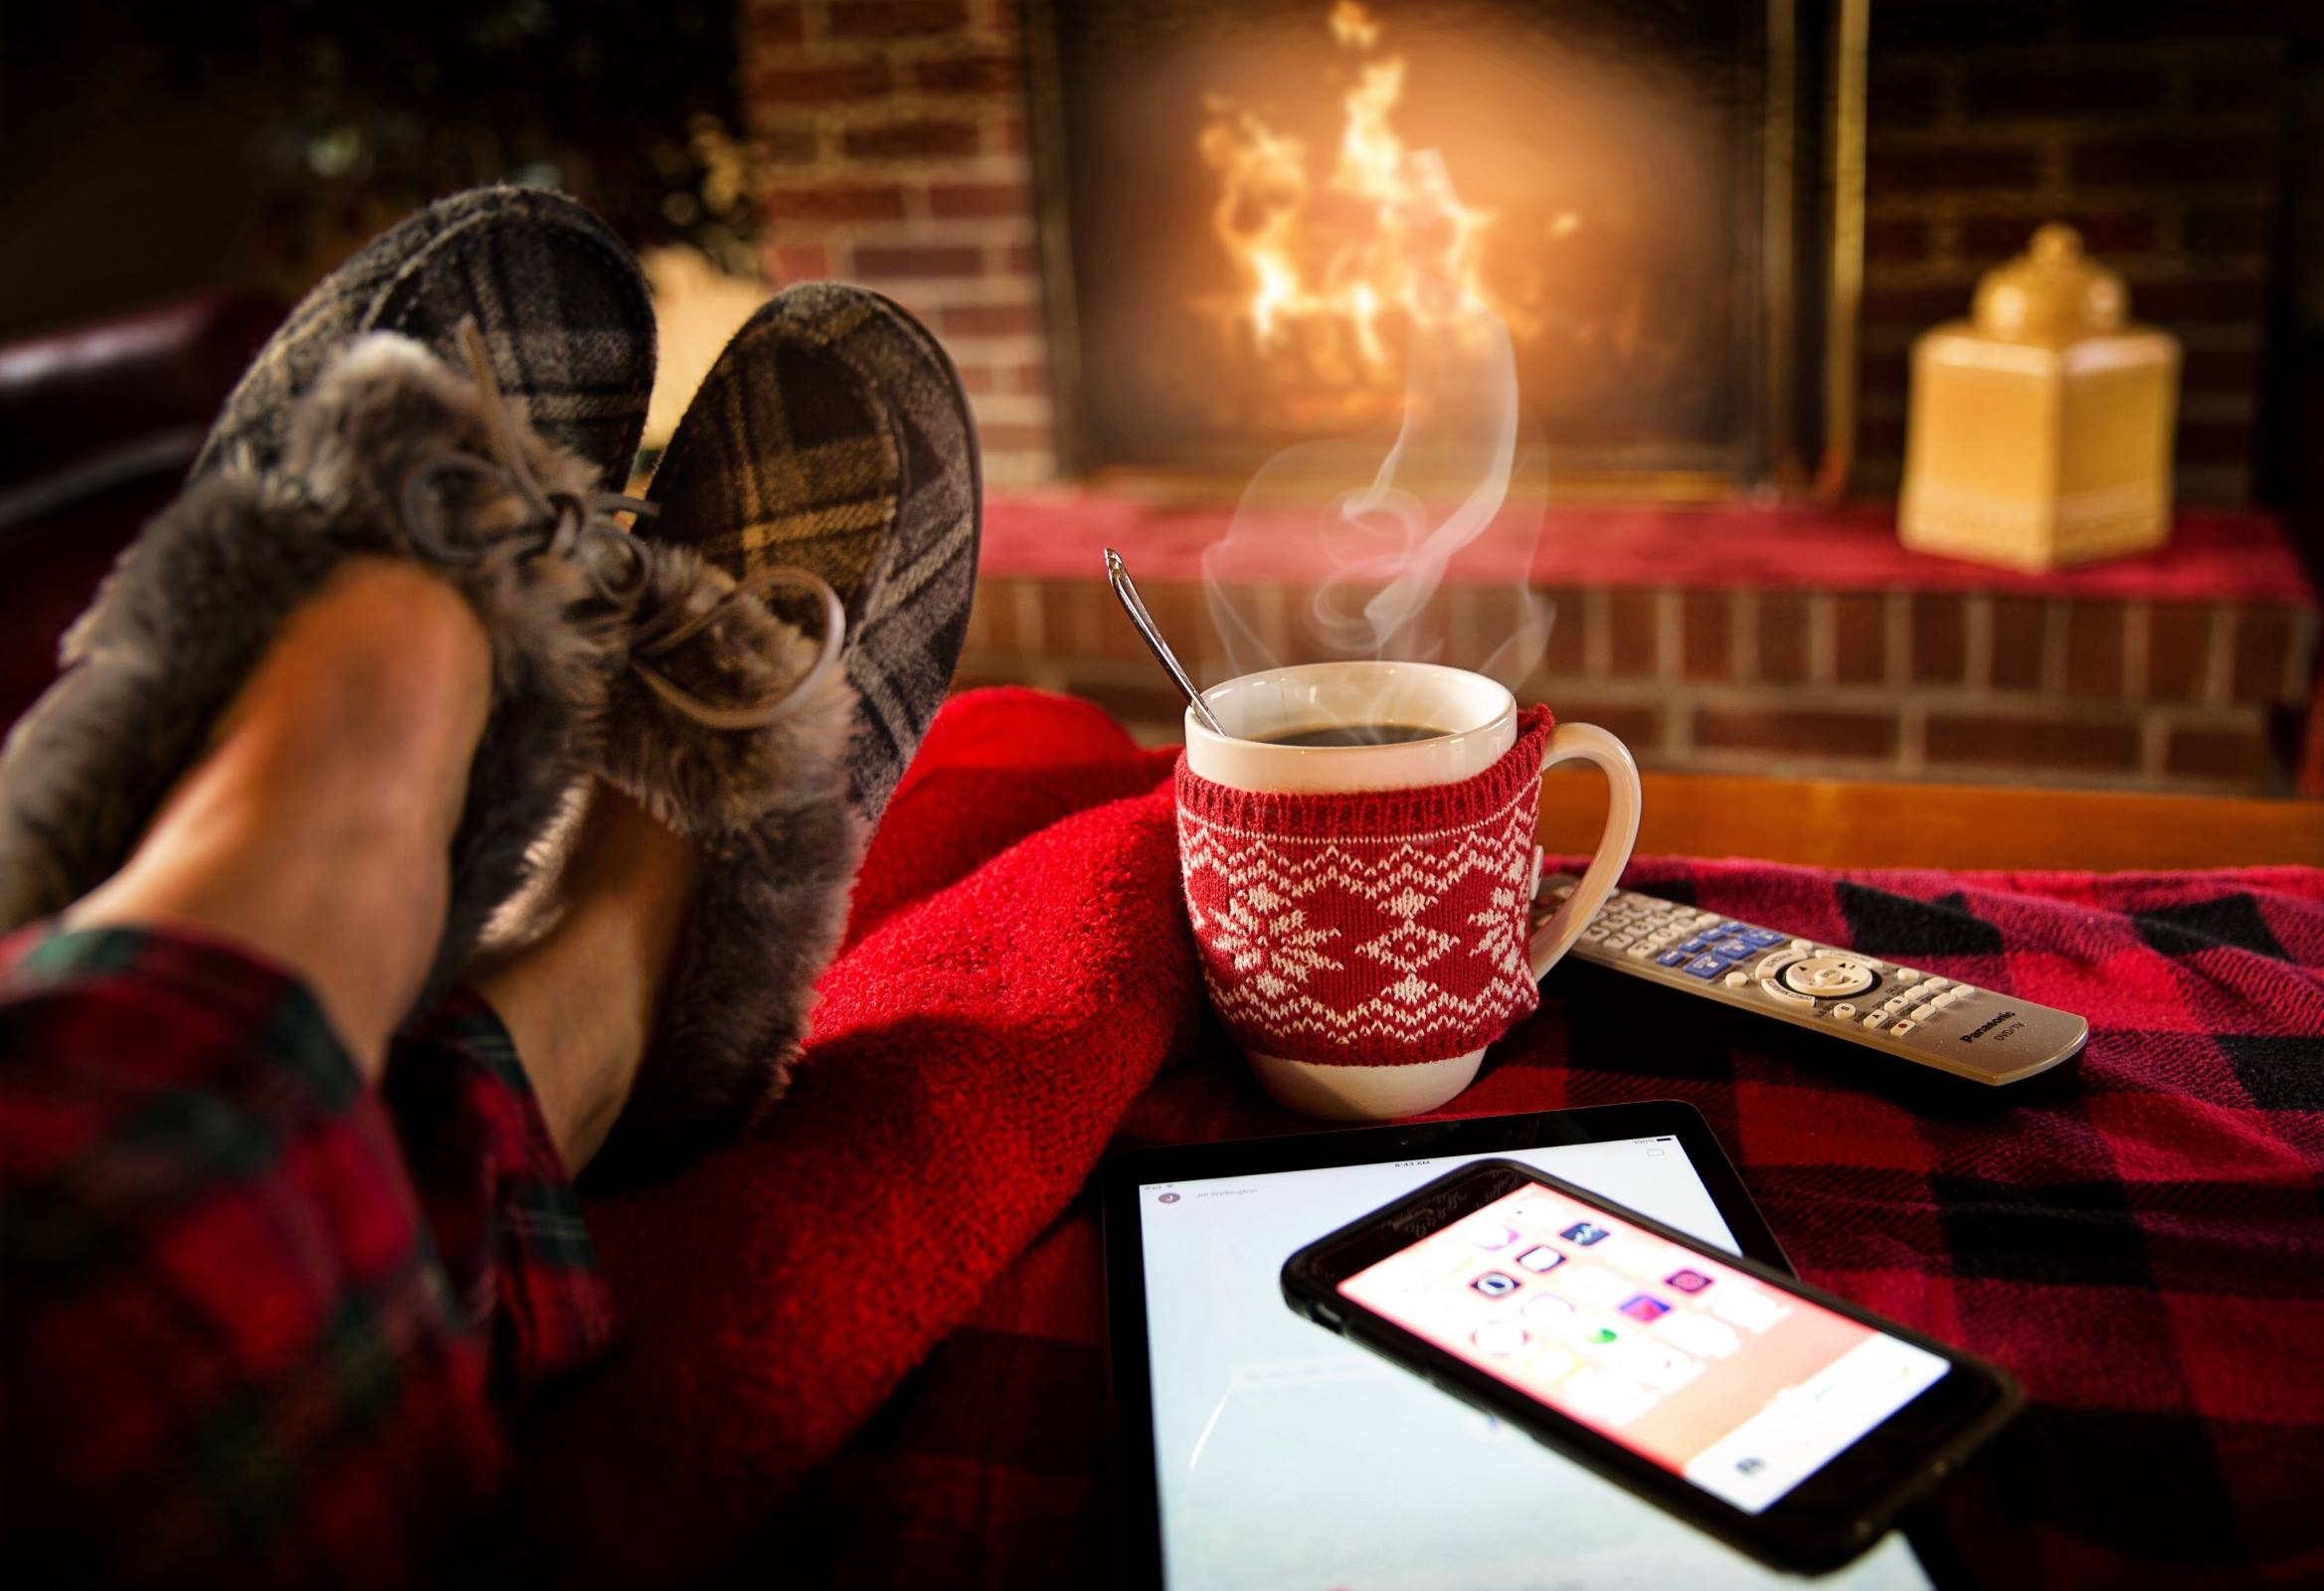 Mug of coffee in front of fire